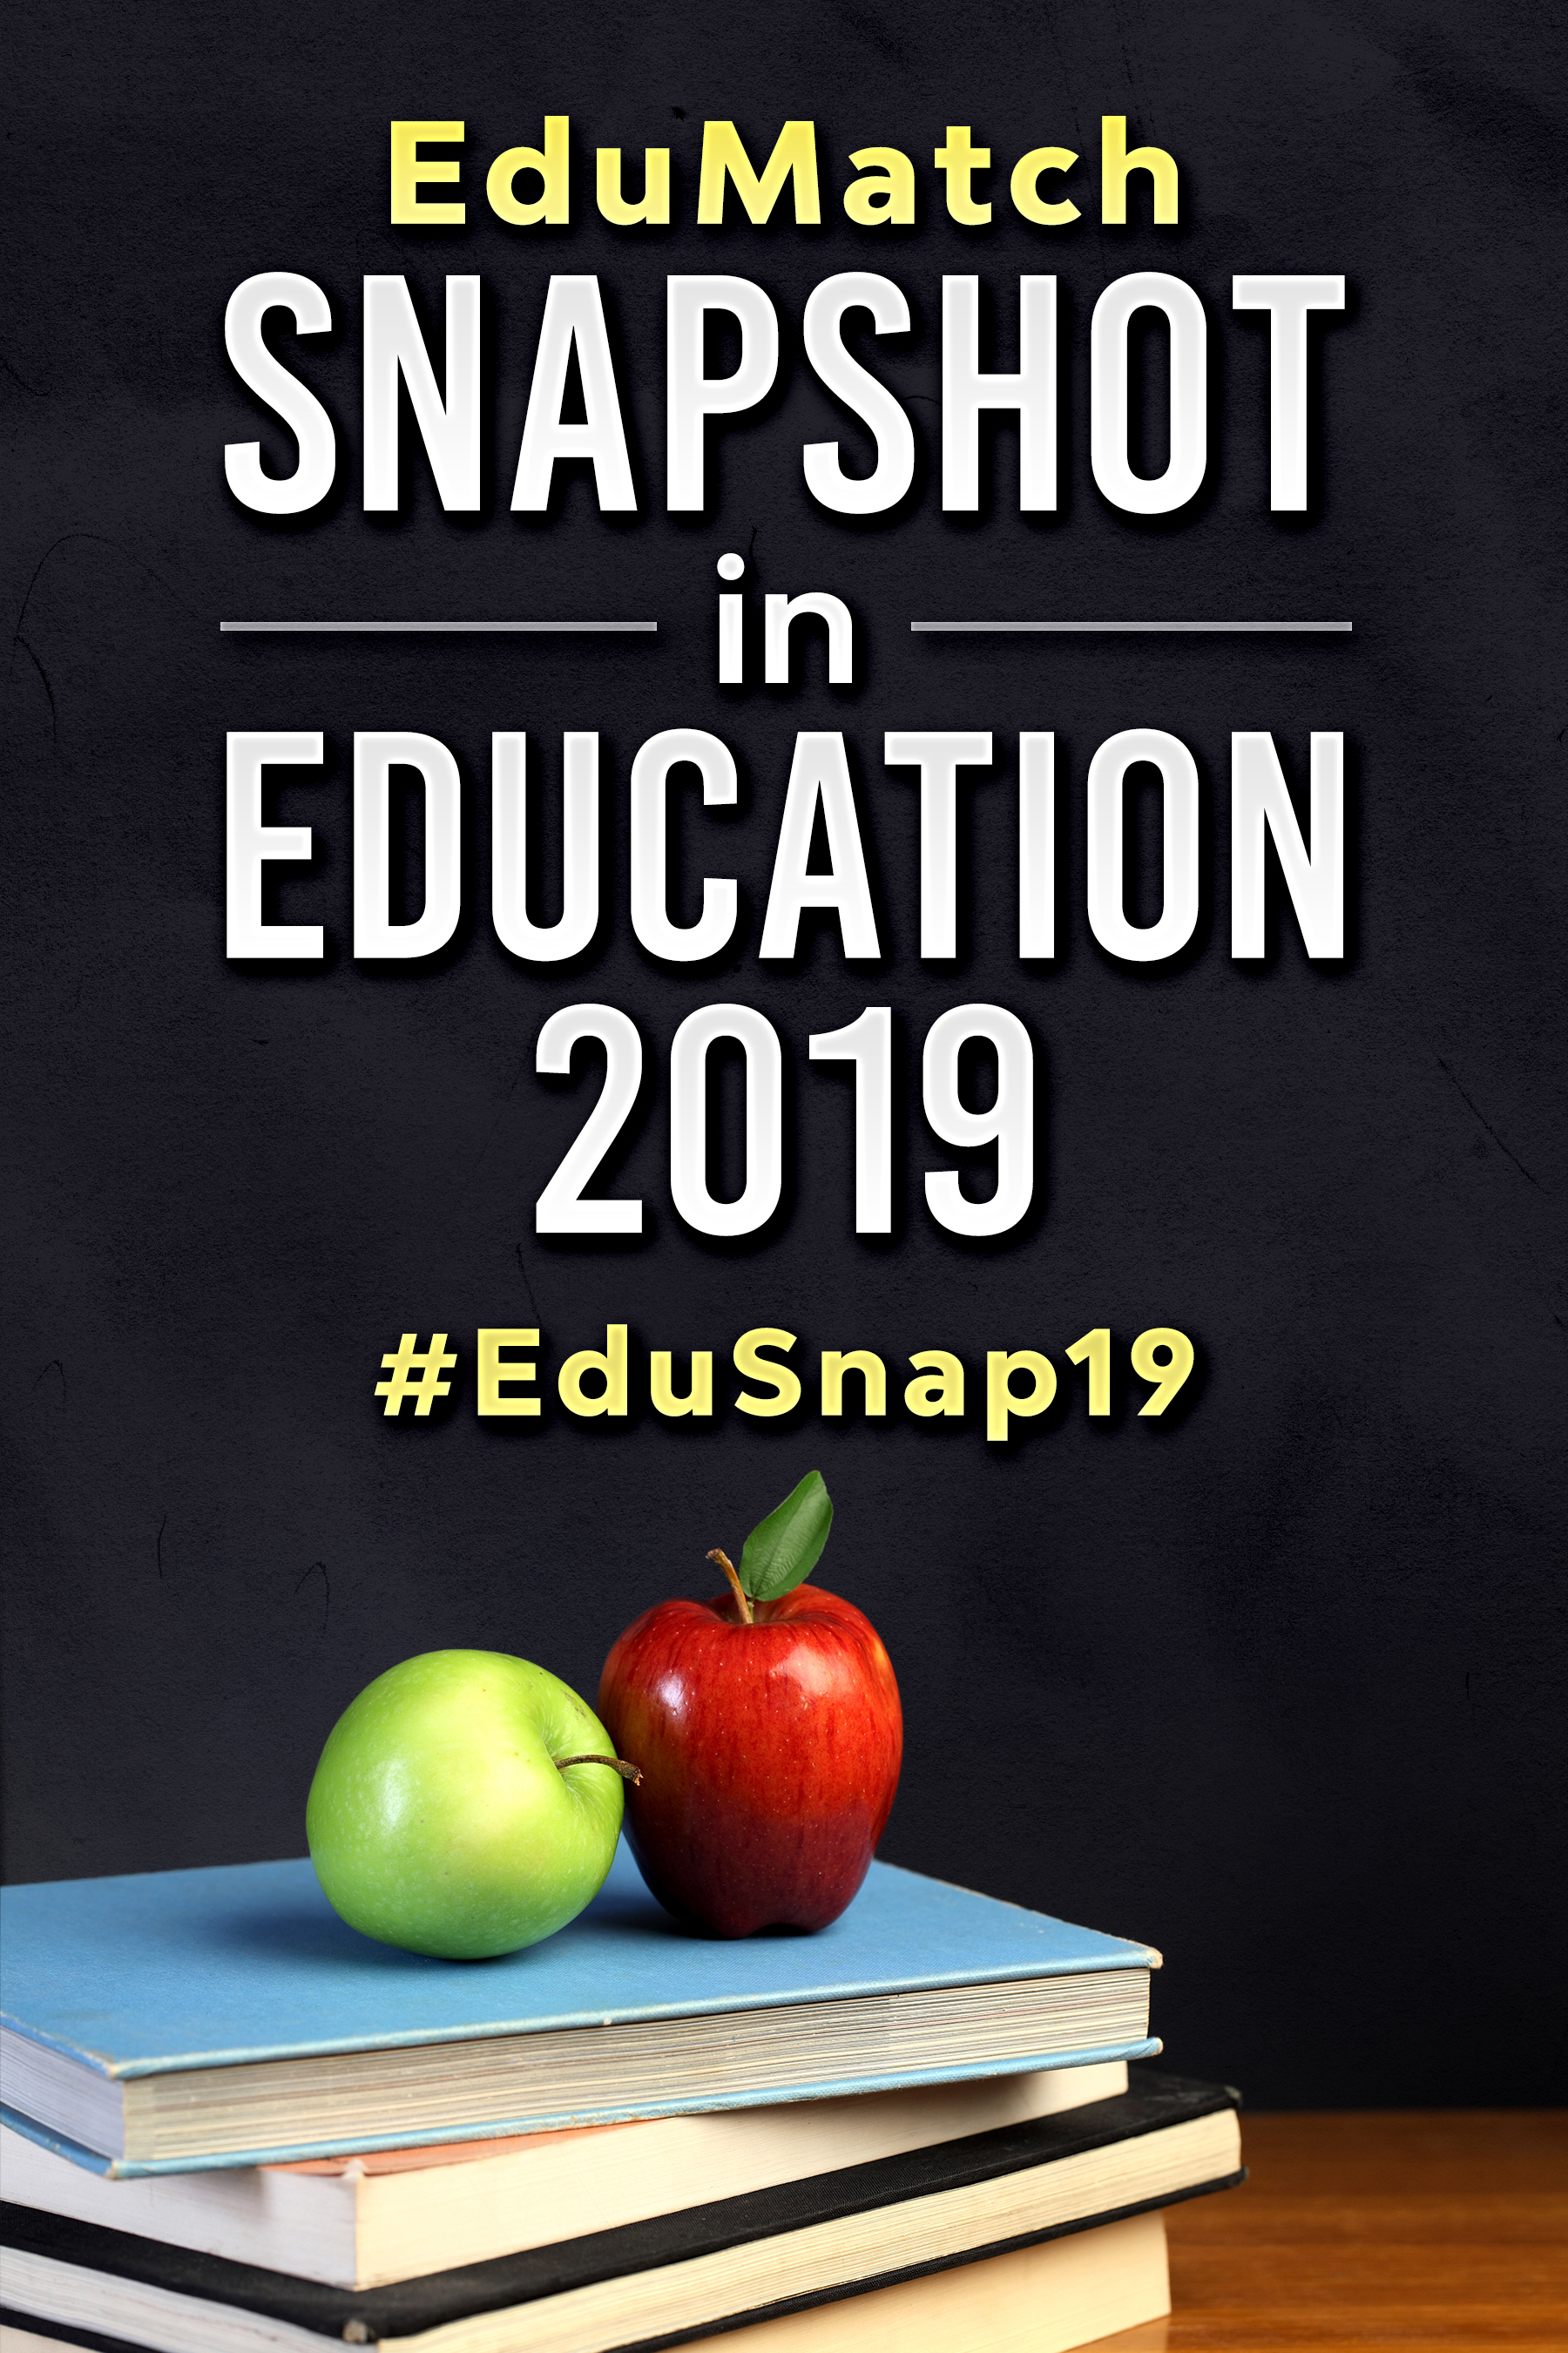 EduMatch Snapshot in Education 2019